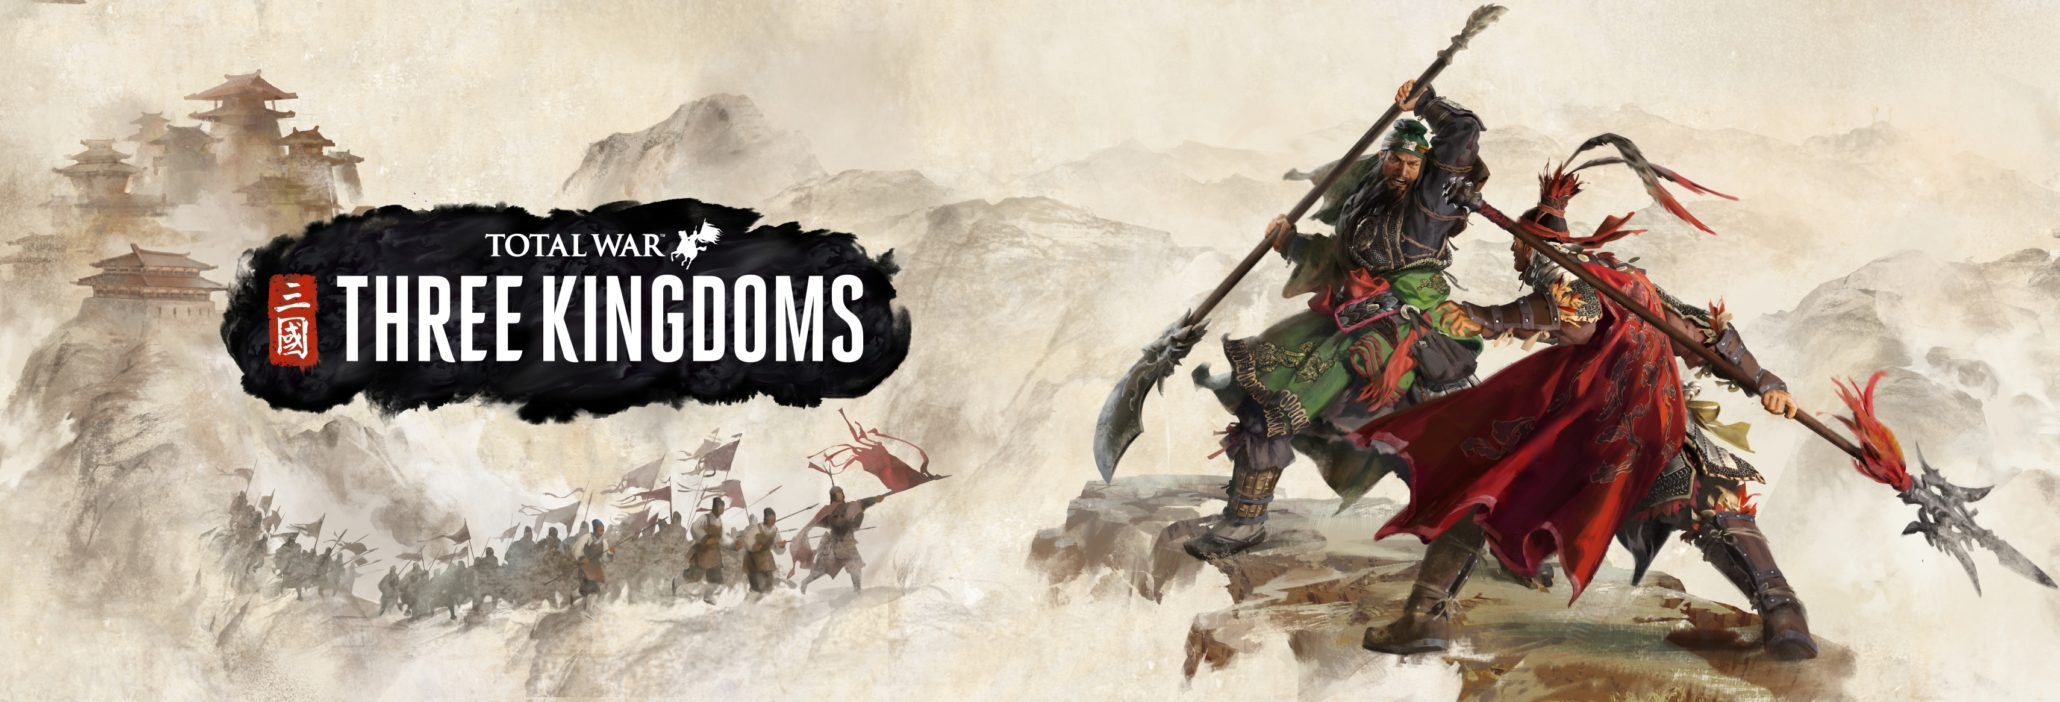 Total War: Three Kingdoms Out This May! / Expertec